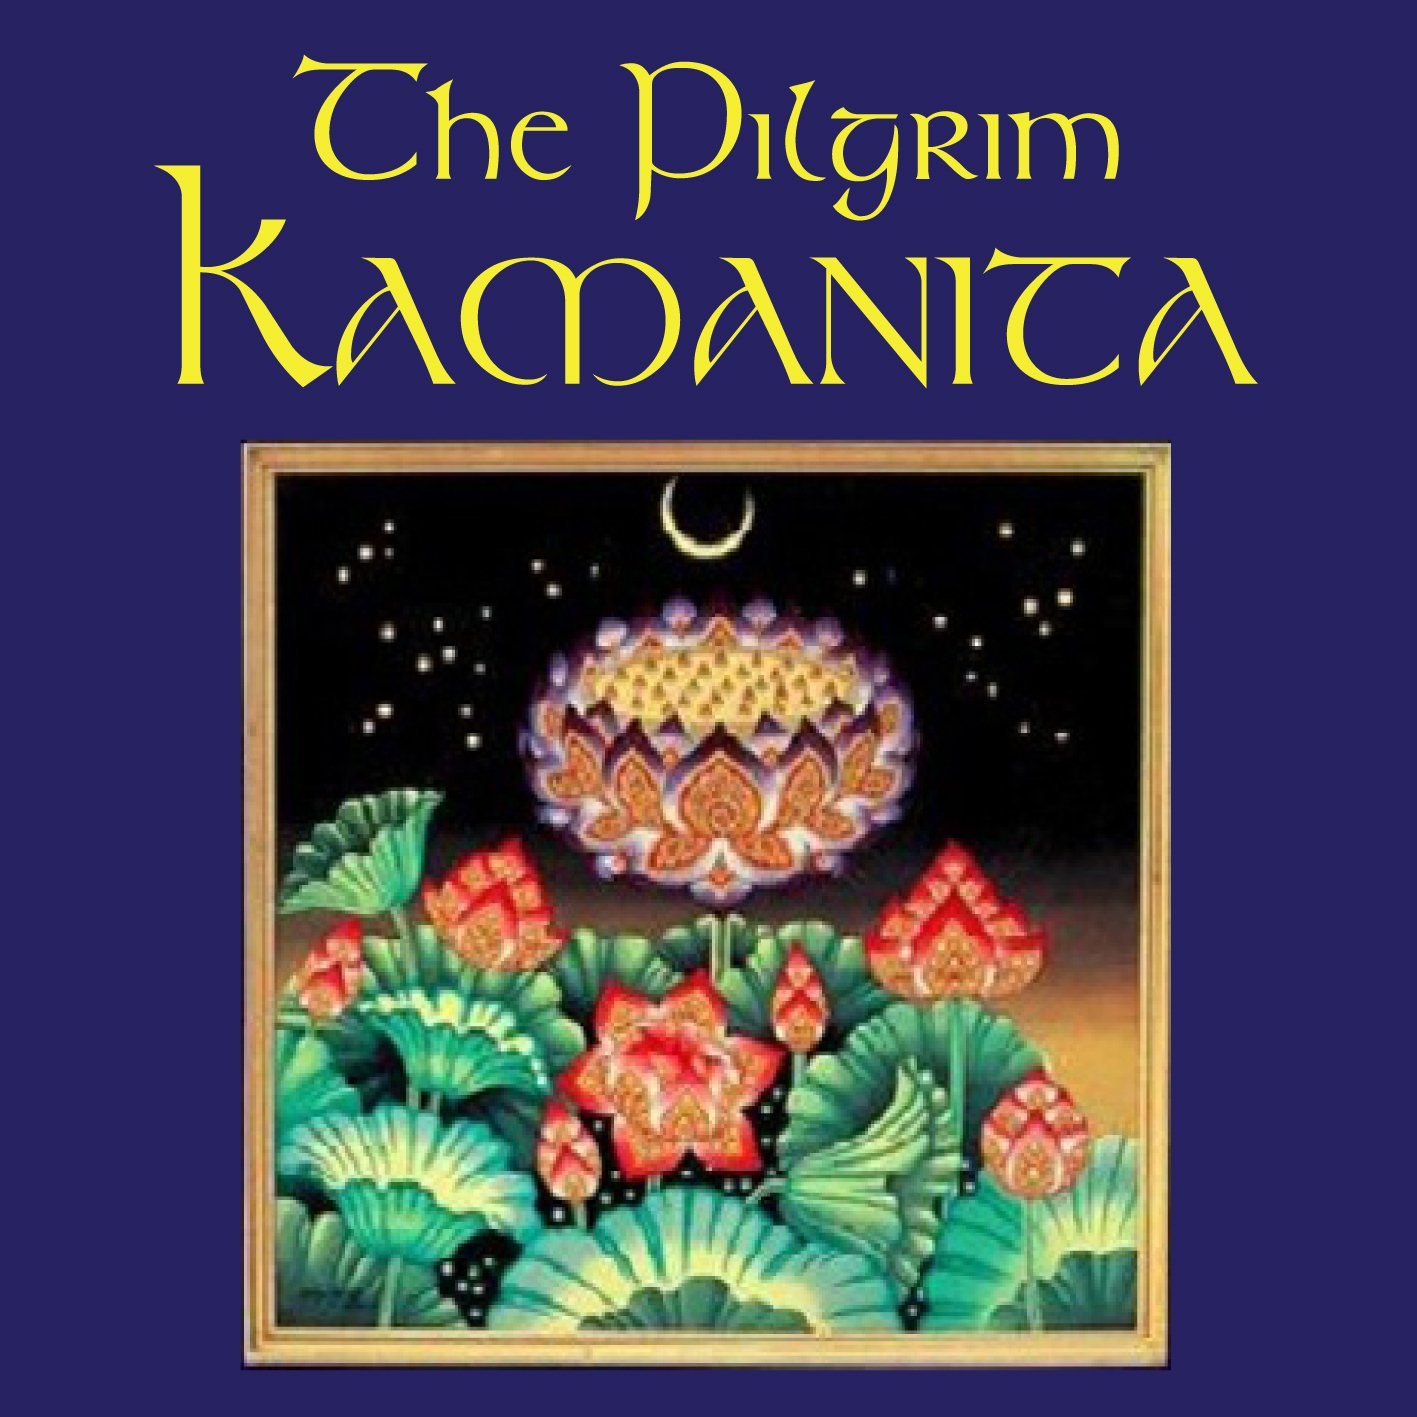 The Pilgrim Kamanita - Read by Ajahn Amaro